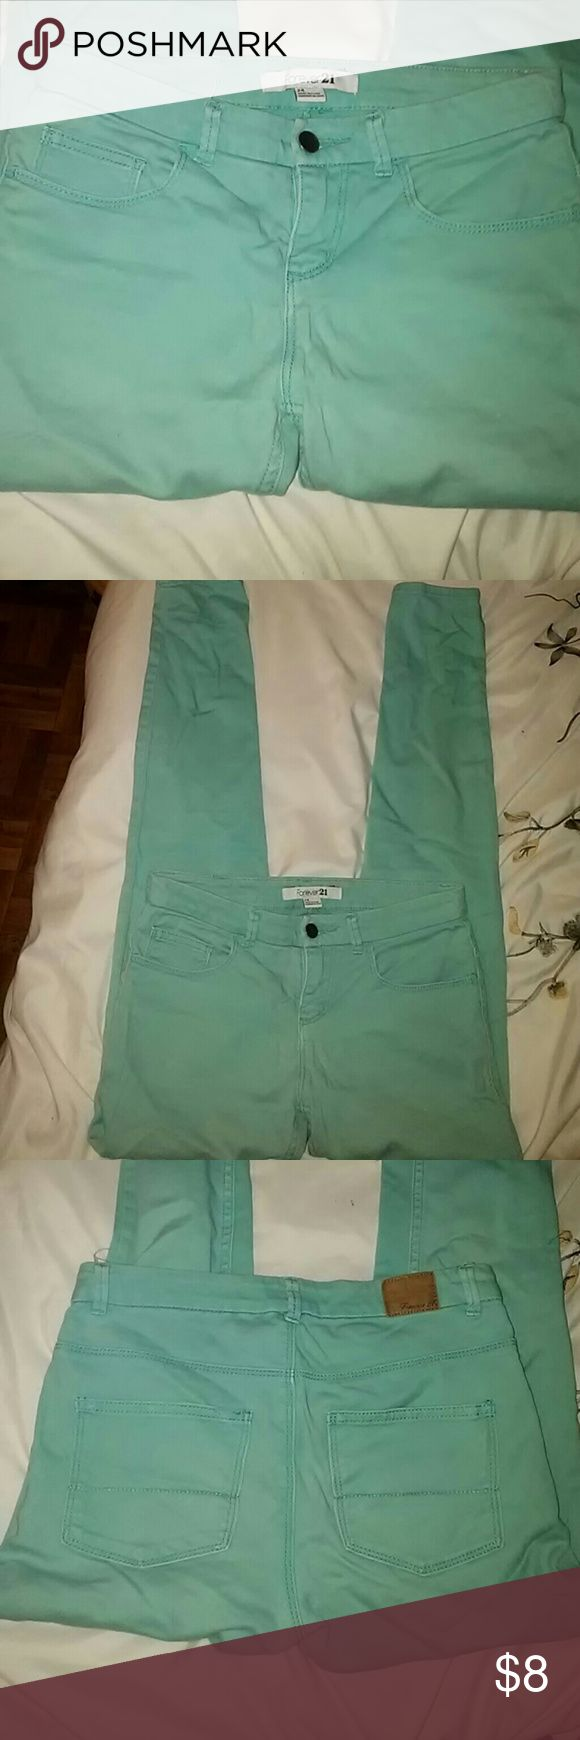 Forever 21 Aqua Teal Skinny Stretch Pastel Jeans A pair of mint green skinny jeans featuring a mid-rise fit, classic five pocket design and a zip fly. Pairs perfectly with summer sandals and an oversized camel brown handbag or dress them up with a statement necklace and pumps! Forever 21 Jeans Skinny